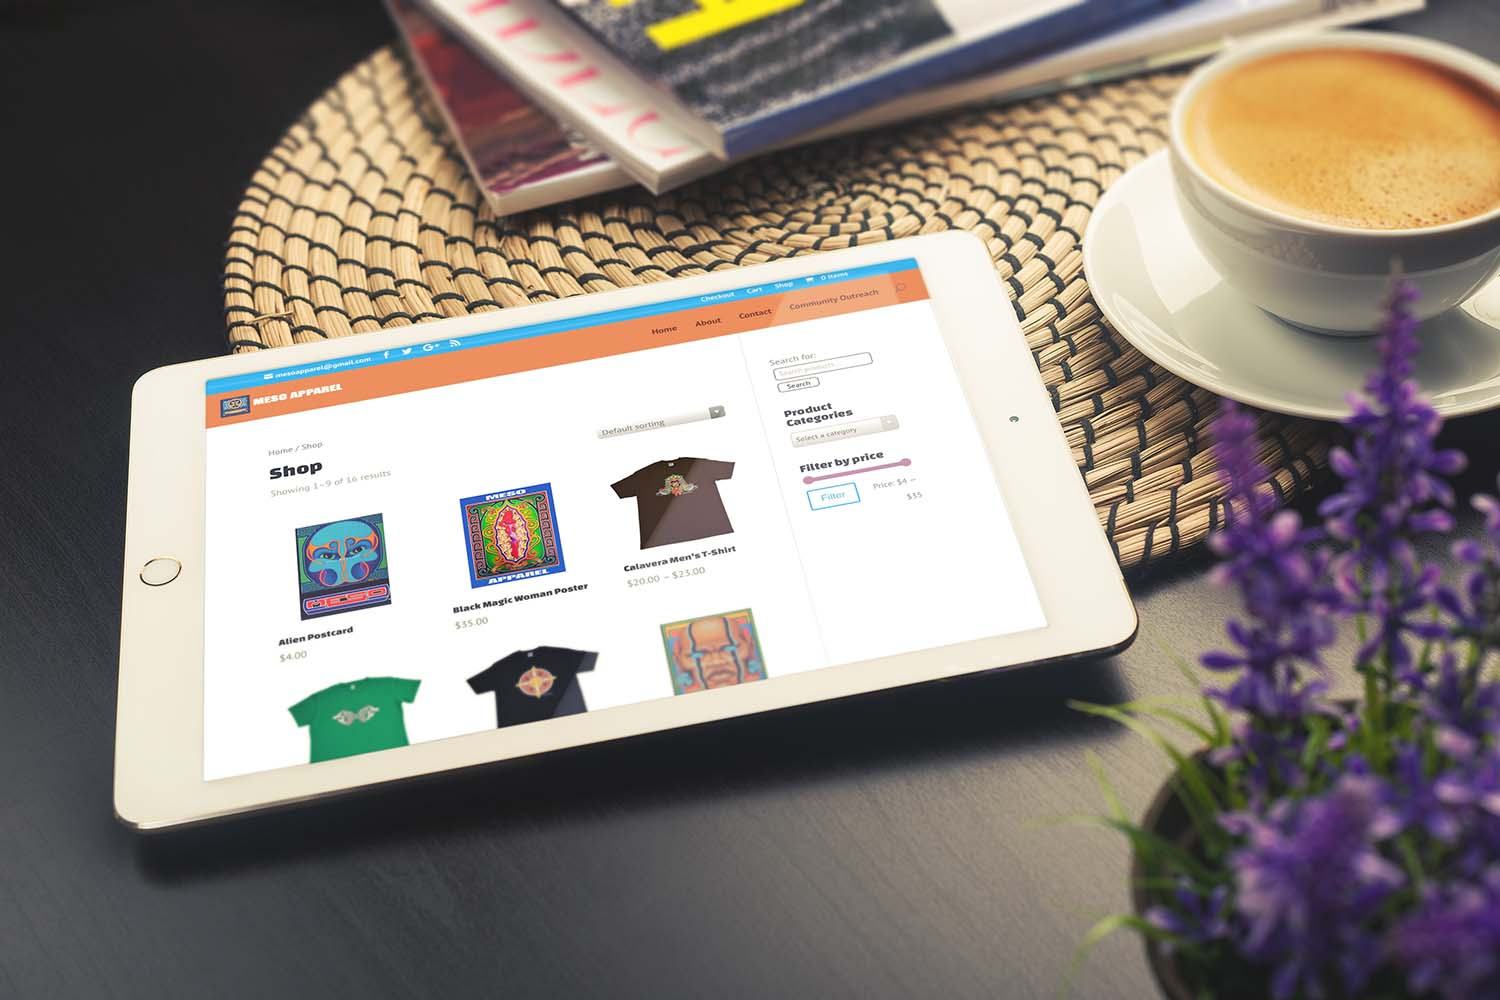 Website design for artist shop, shown on a tablet